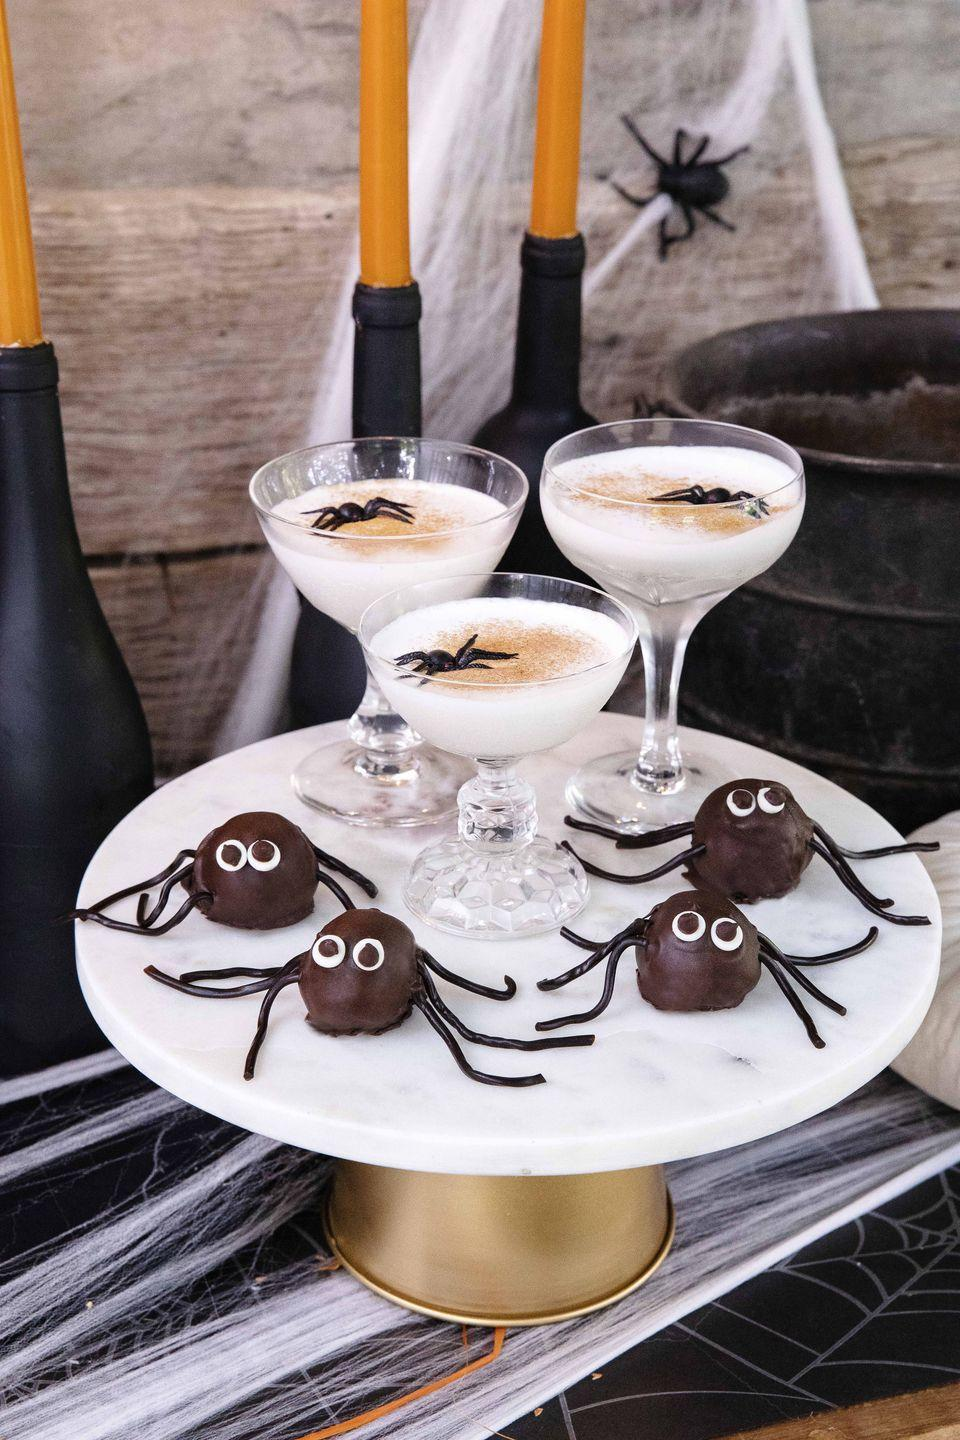 """<p>These no-bake truffles are made with just three ingredients, plus eyeballs and licorice for decoration.</p><p><strong><a href=""""https://www.countryliving.com/food-drinks/a33943269/spider-cookie-truffles/"""" rel=""""nofollow noopener"""" target=""""_blank"""" data-ylk=""""slk:Get the recipe"""" class=""""link rapid-noclick-resp"""">Get the recipe</a>.</strong> </p>"""